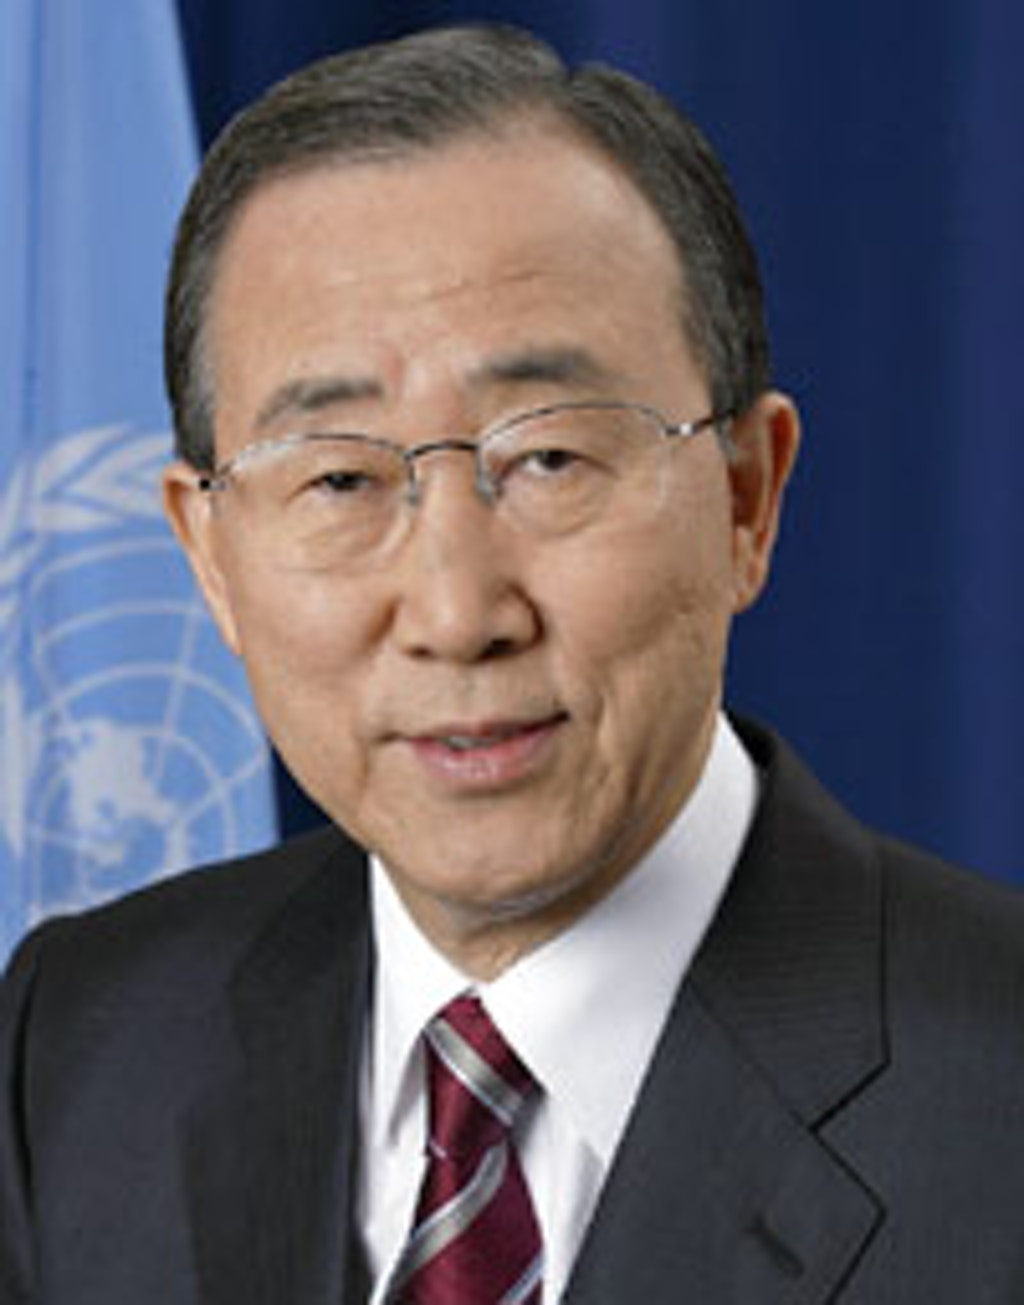 INTERNATIONAL: UN Secretary-General Says Death Penalty Is Cruel and Inhumane